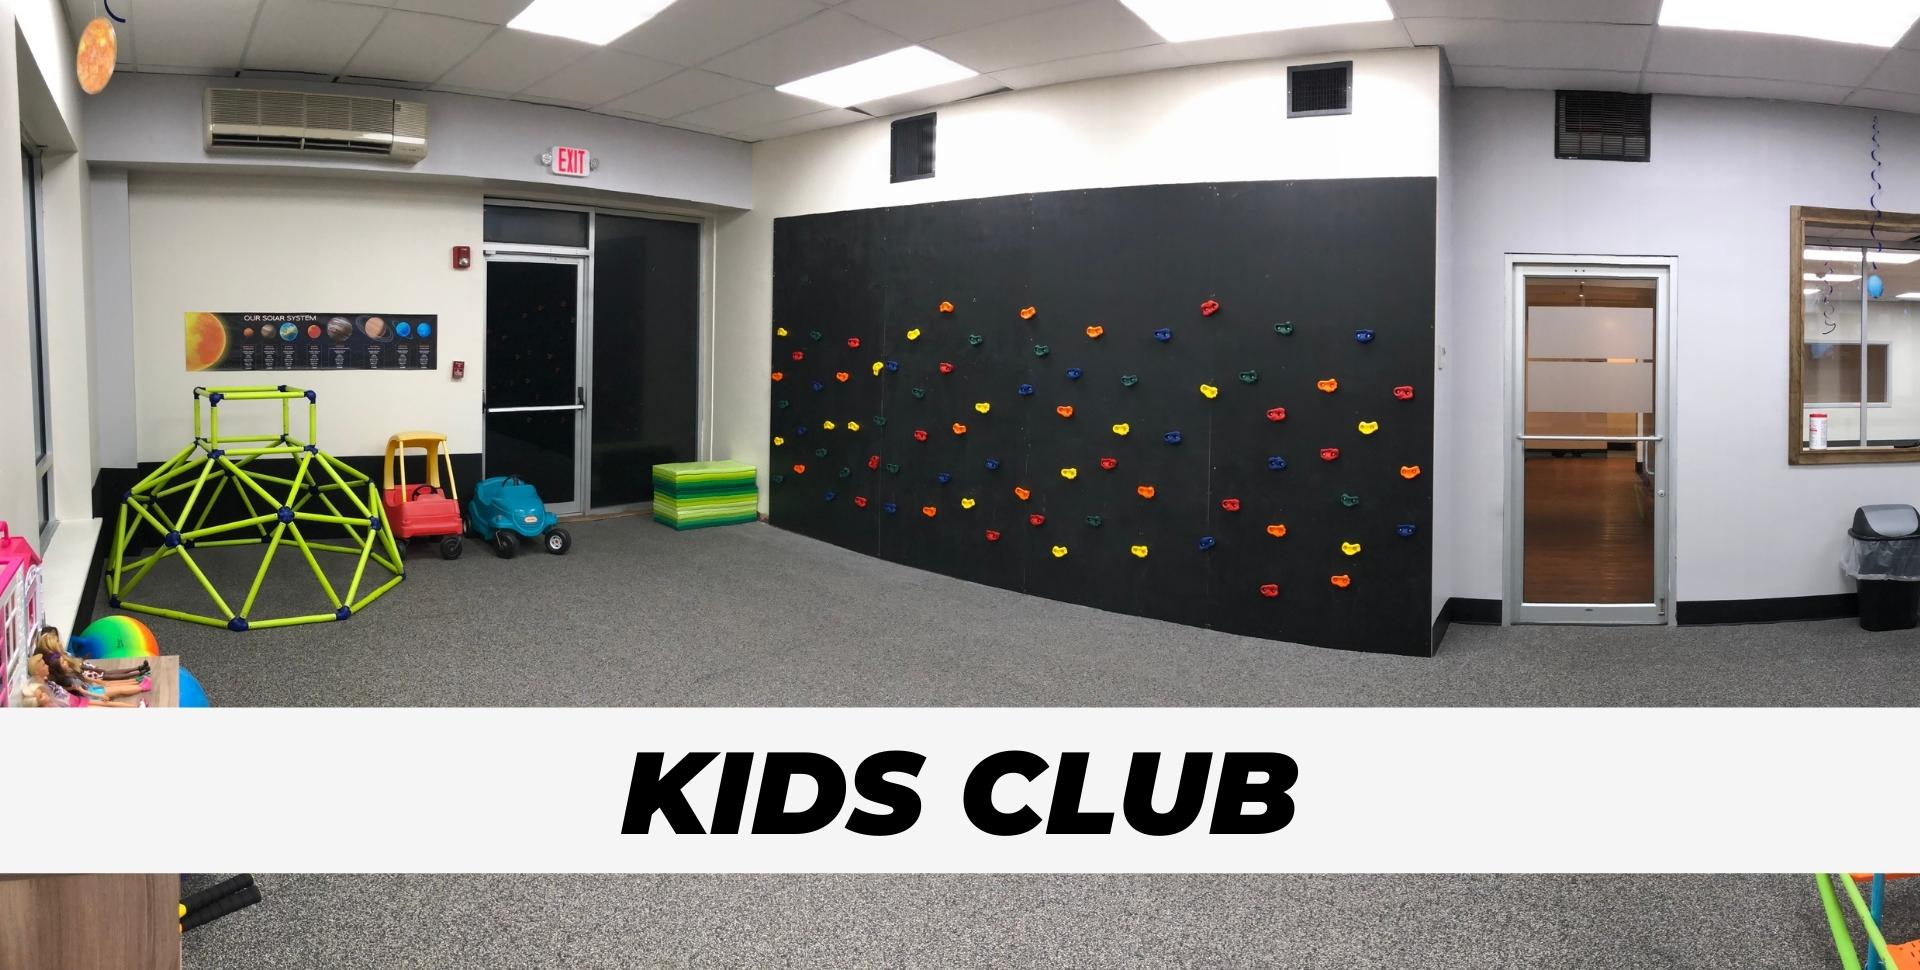 Kids Club day care at gym for portfolio pic